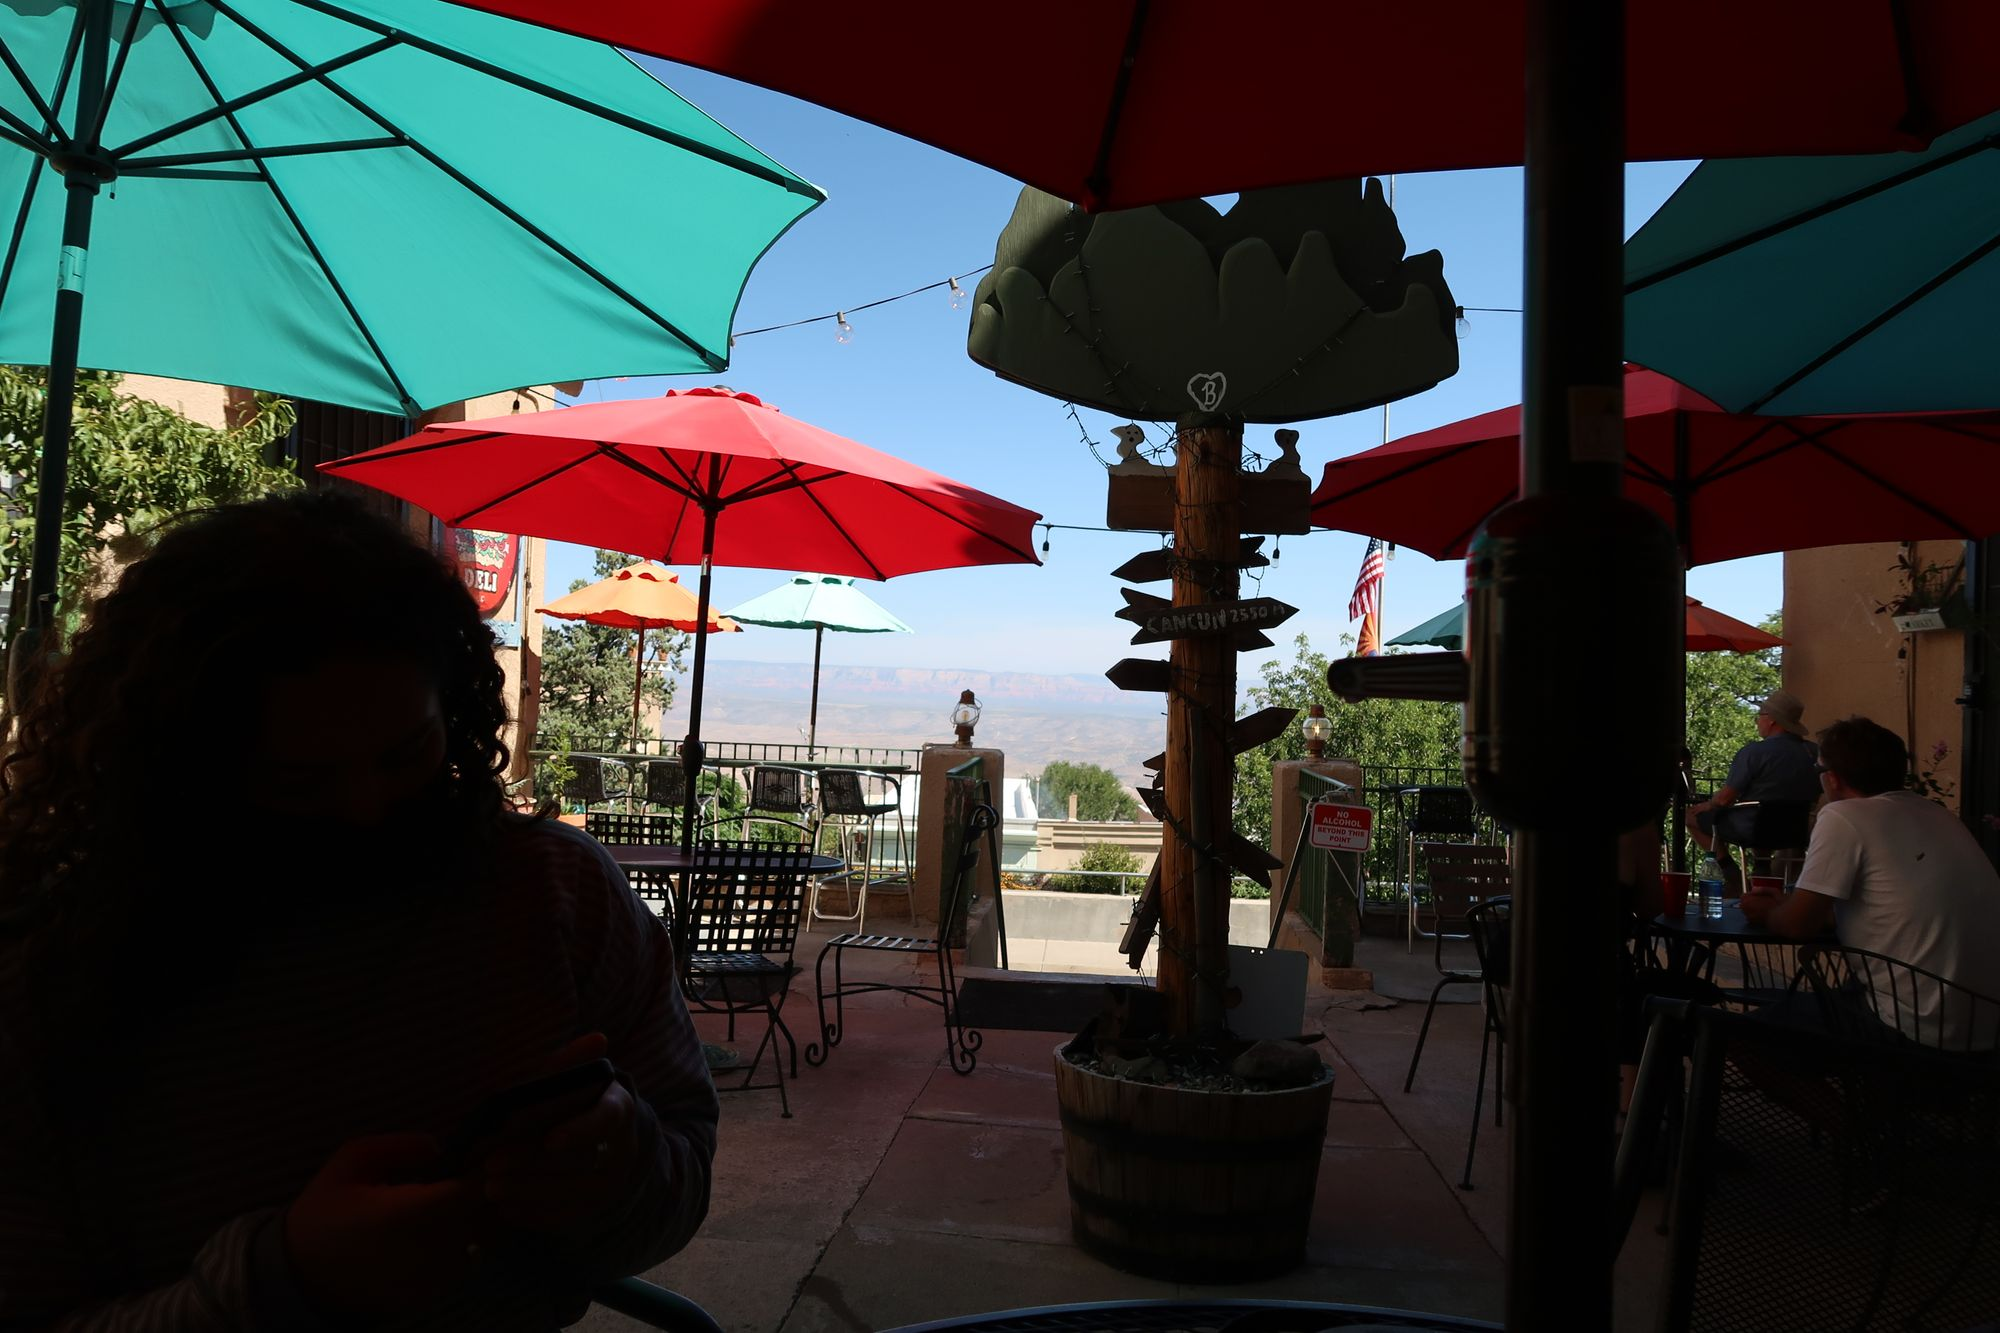 girl sitting in shadows of Hilltop Deli in Jerome Arizona with brighty colored umbrellas